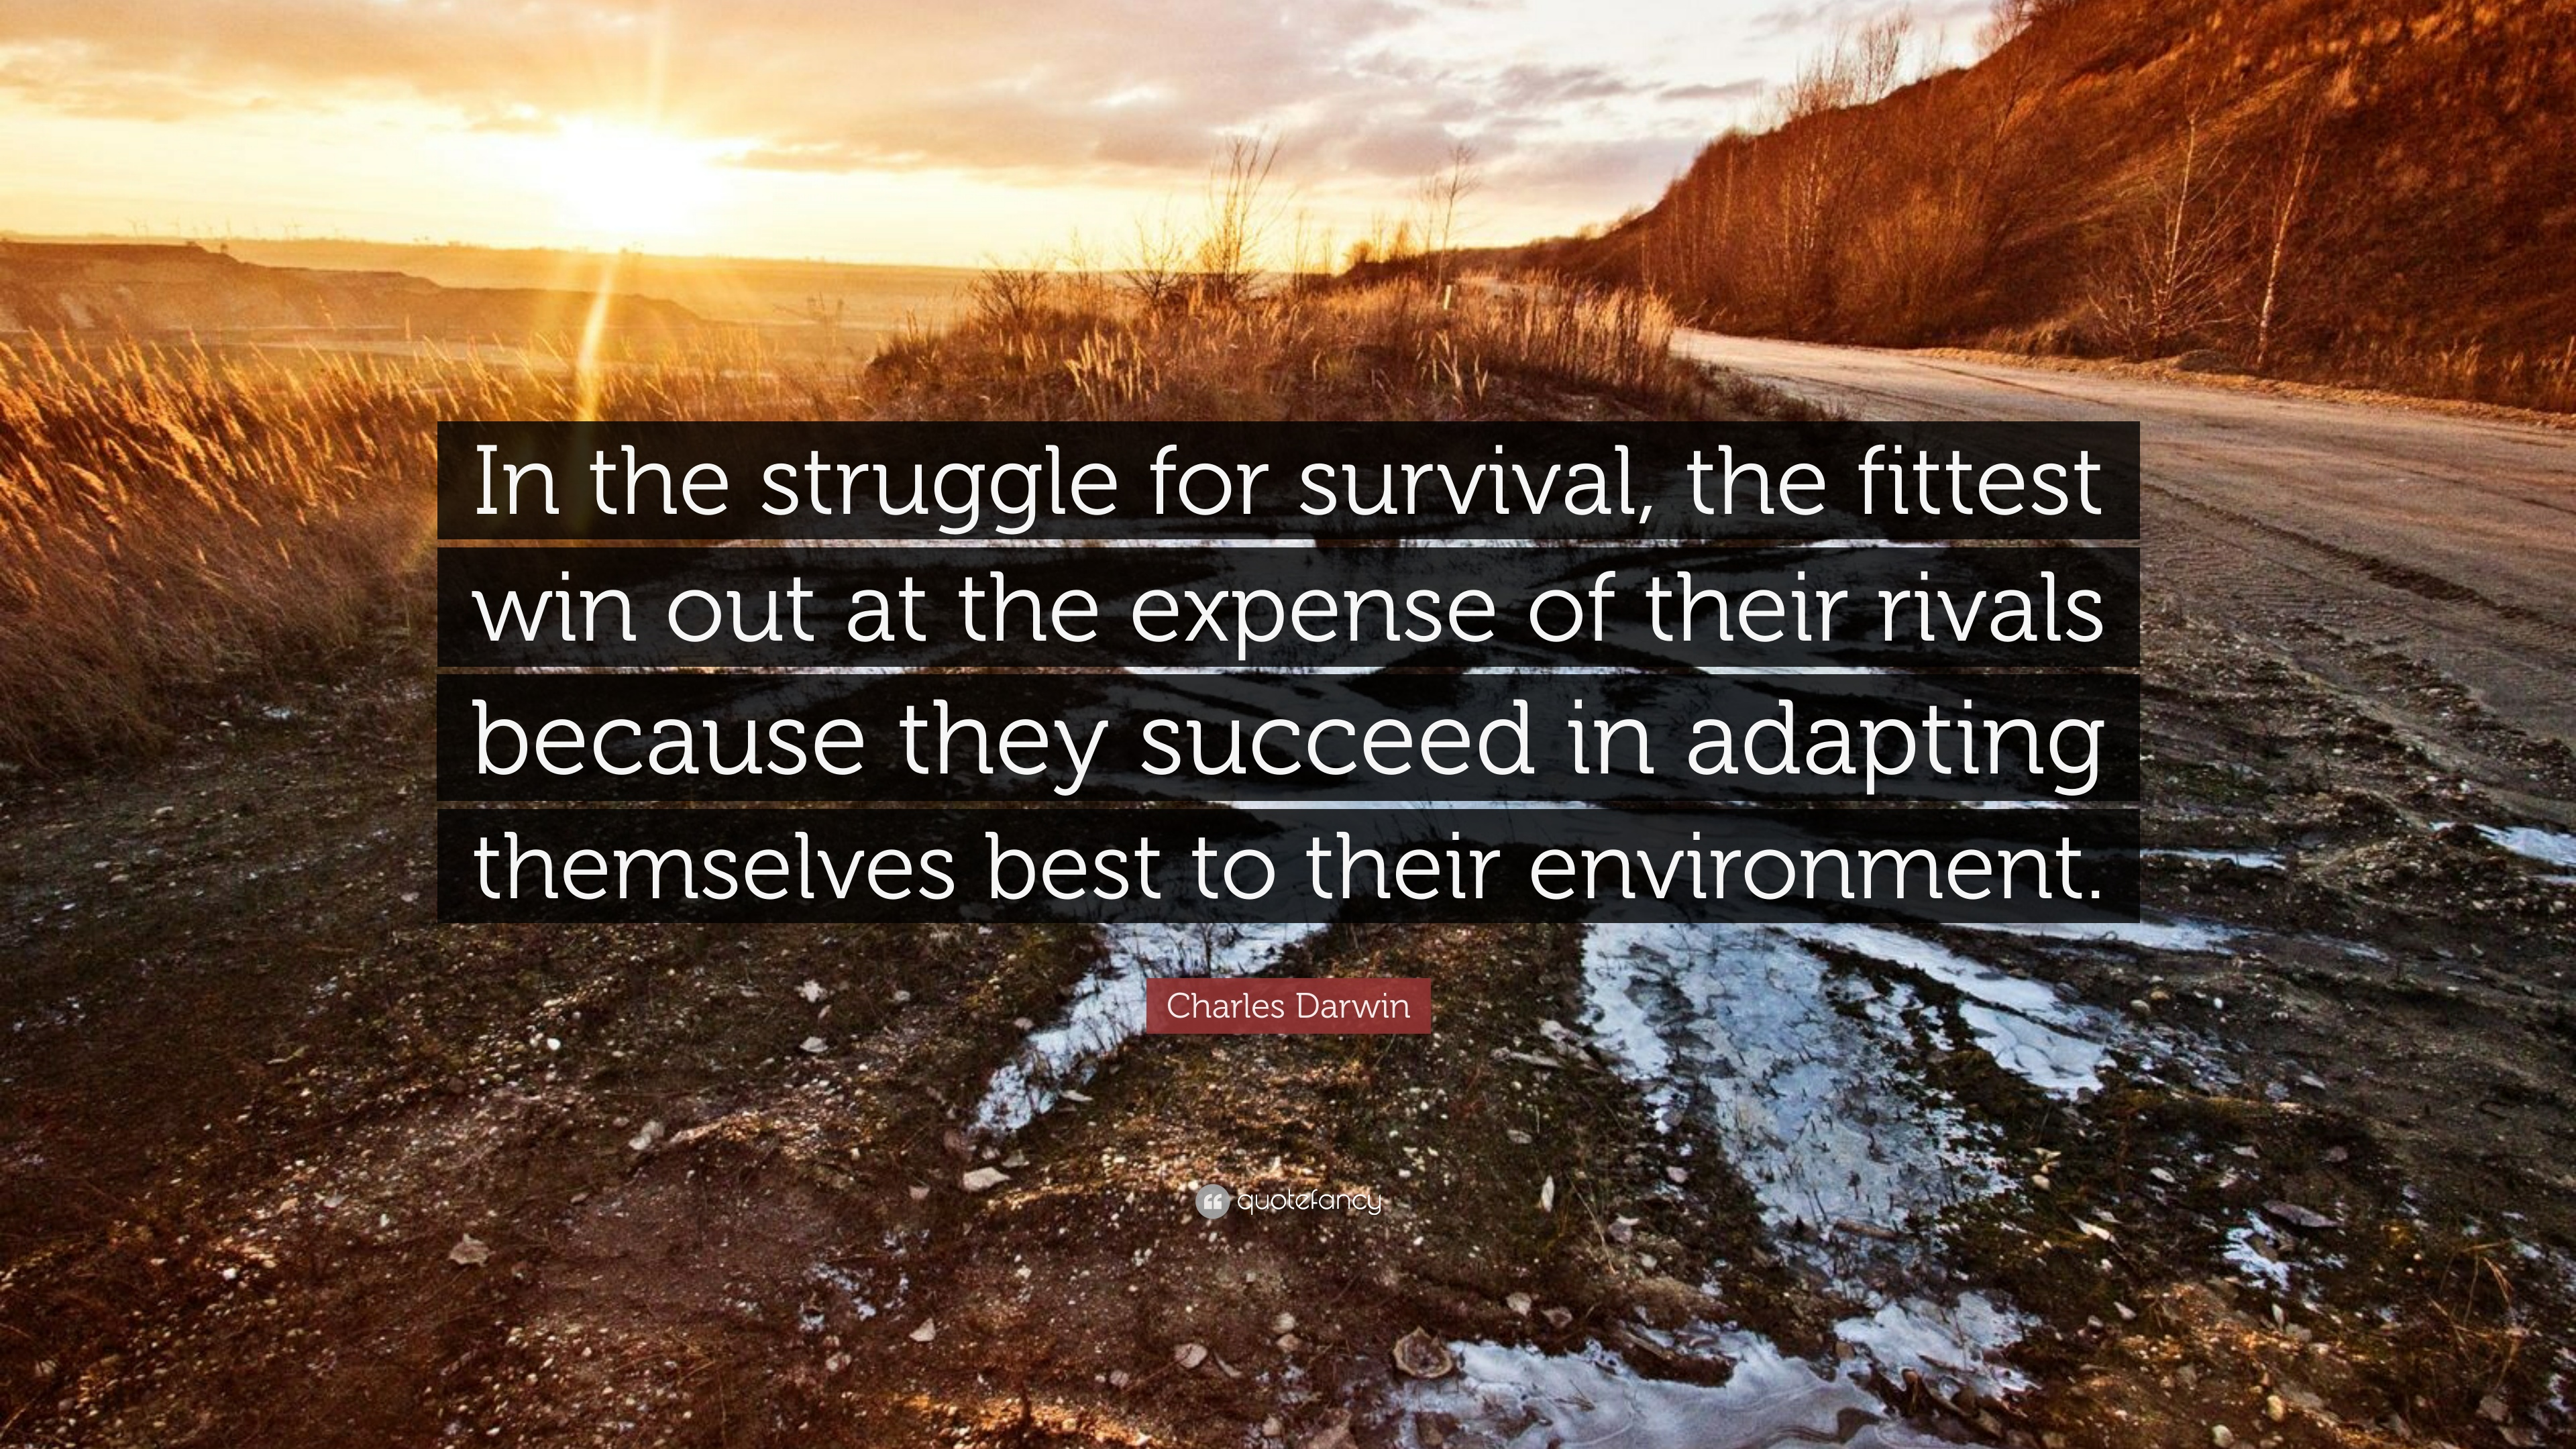 Survival Of Fittest >> Charles Darwin Quote In The Struggle For Survival The